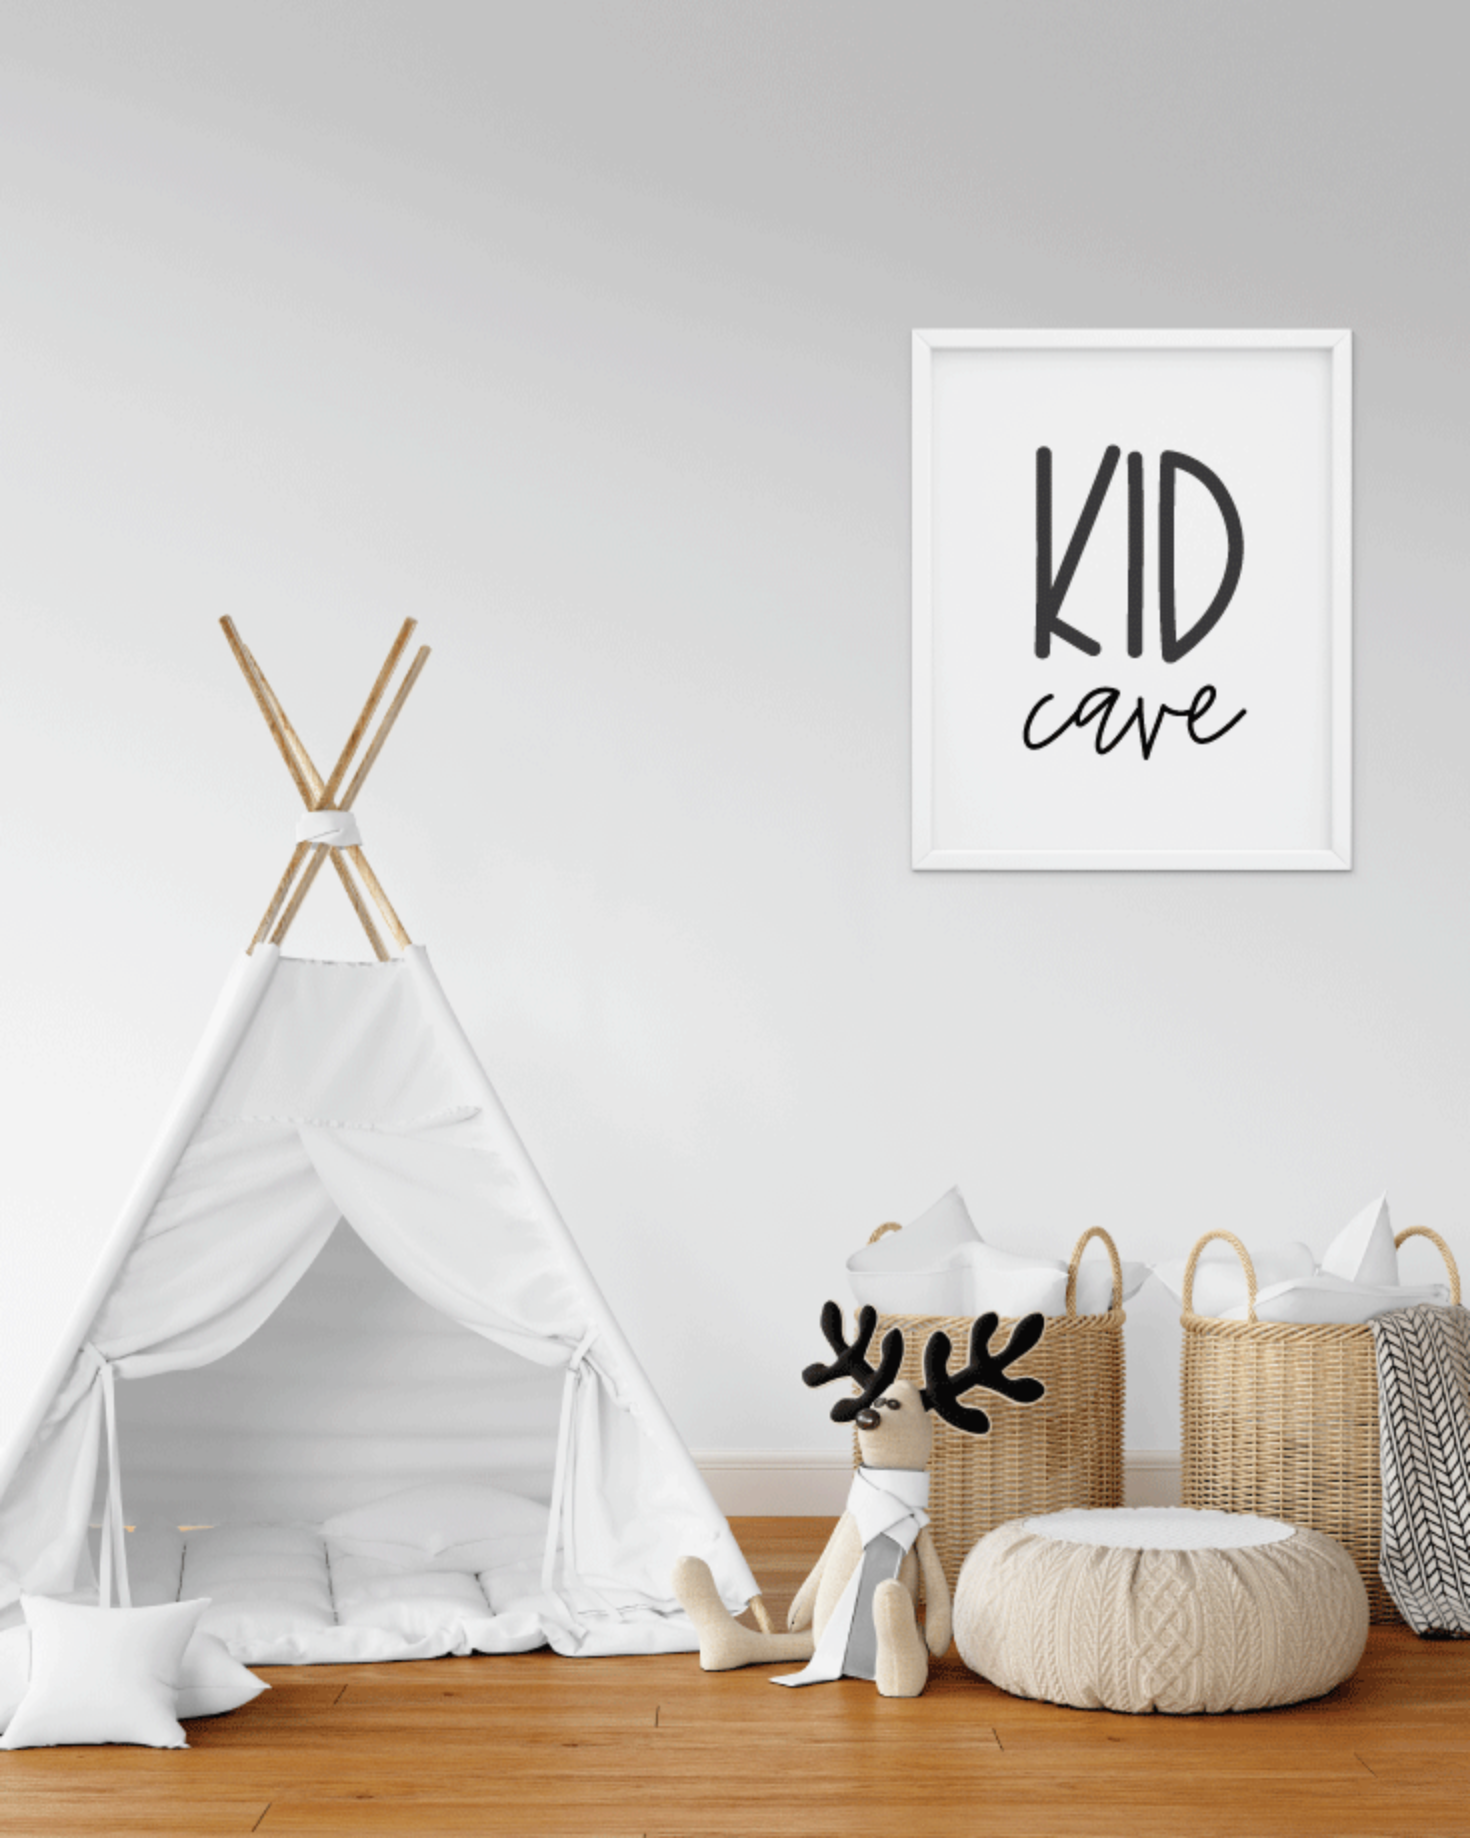 "Printable Kid Cave, 8x10"" Wall Art Sign - Kid Playroom or Bedroom Sign"